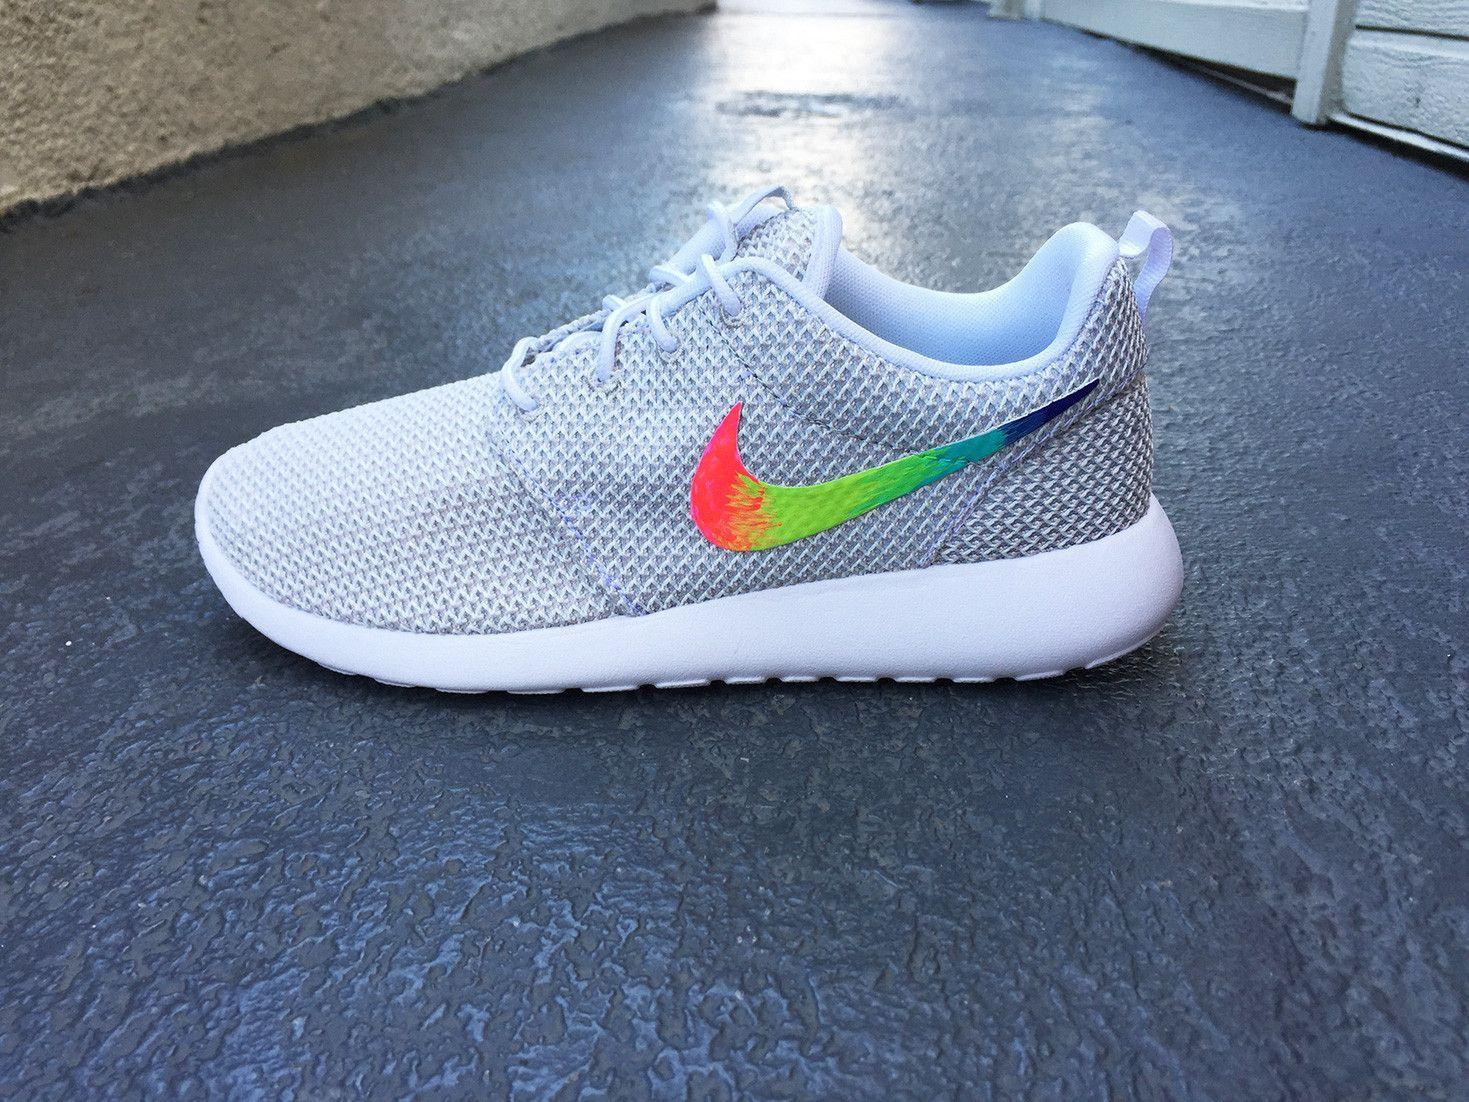 nike tennis shoes custom